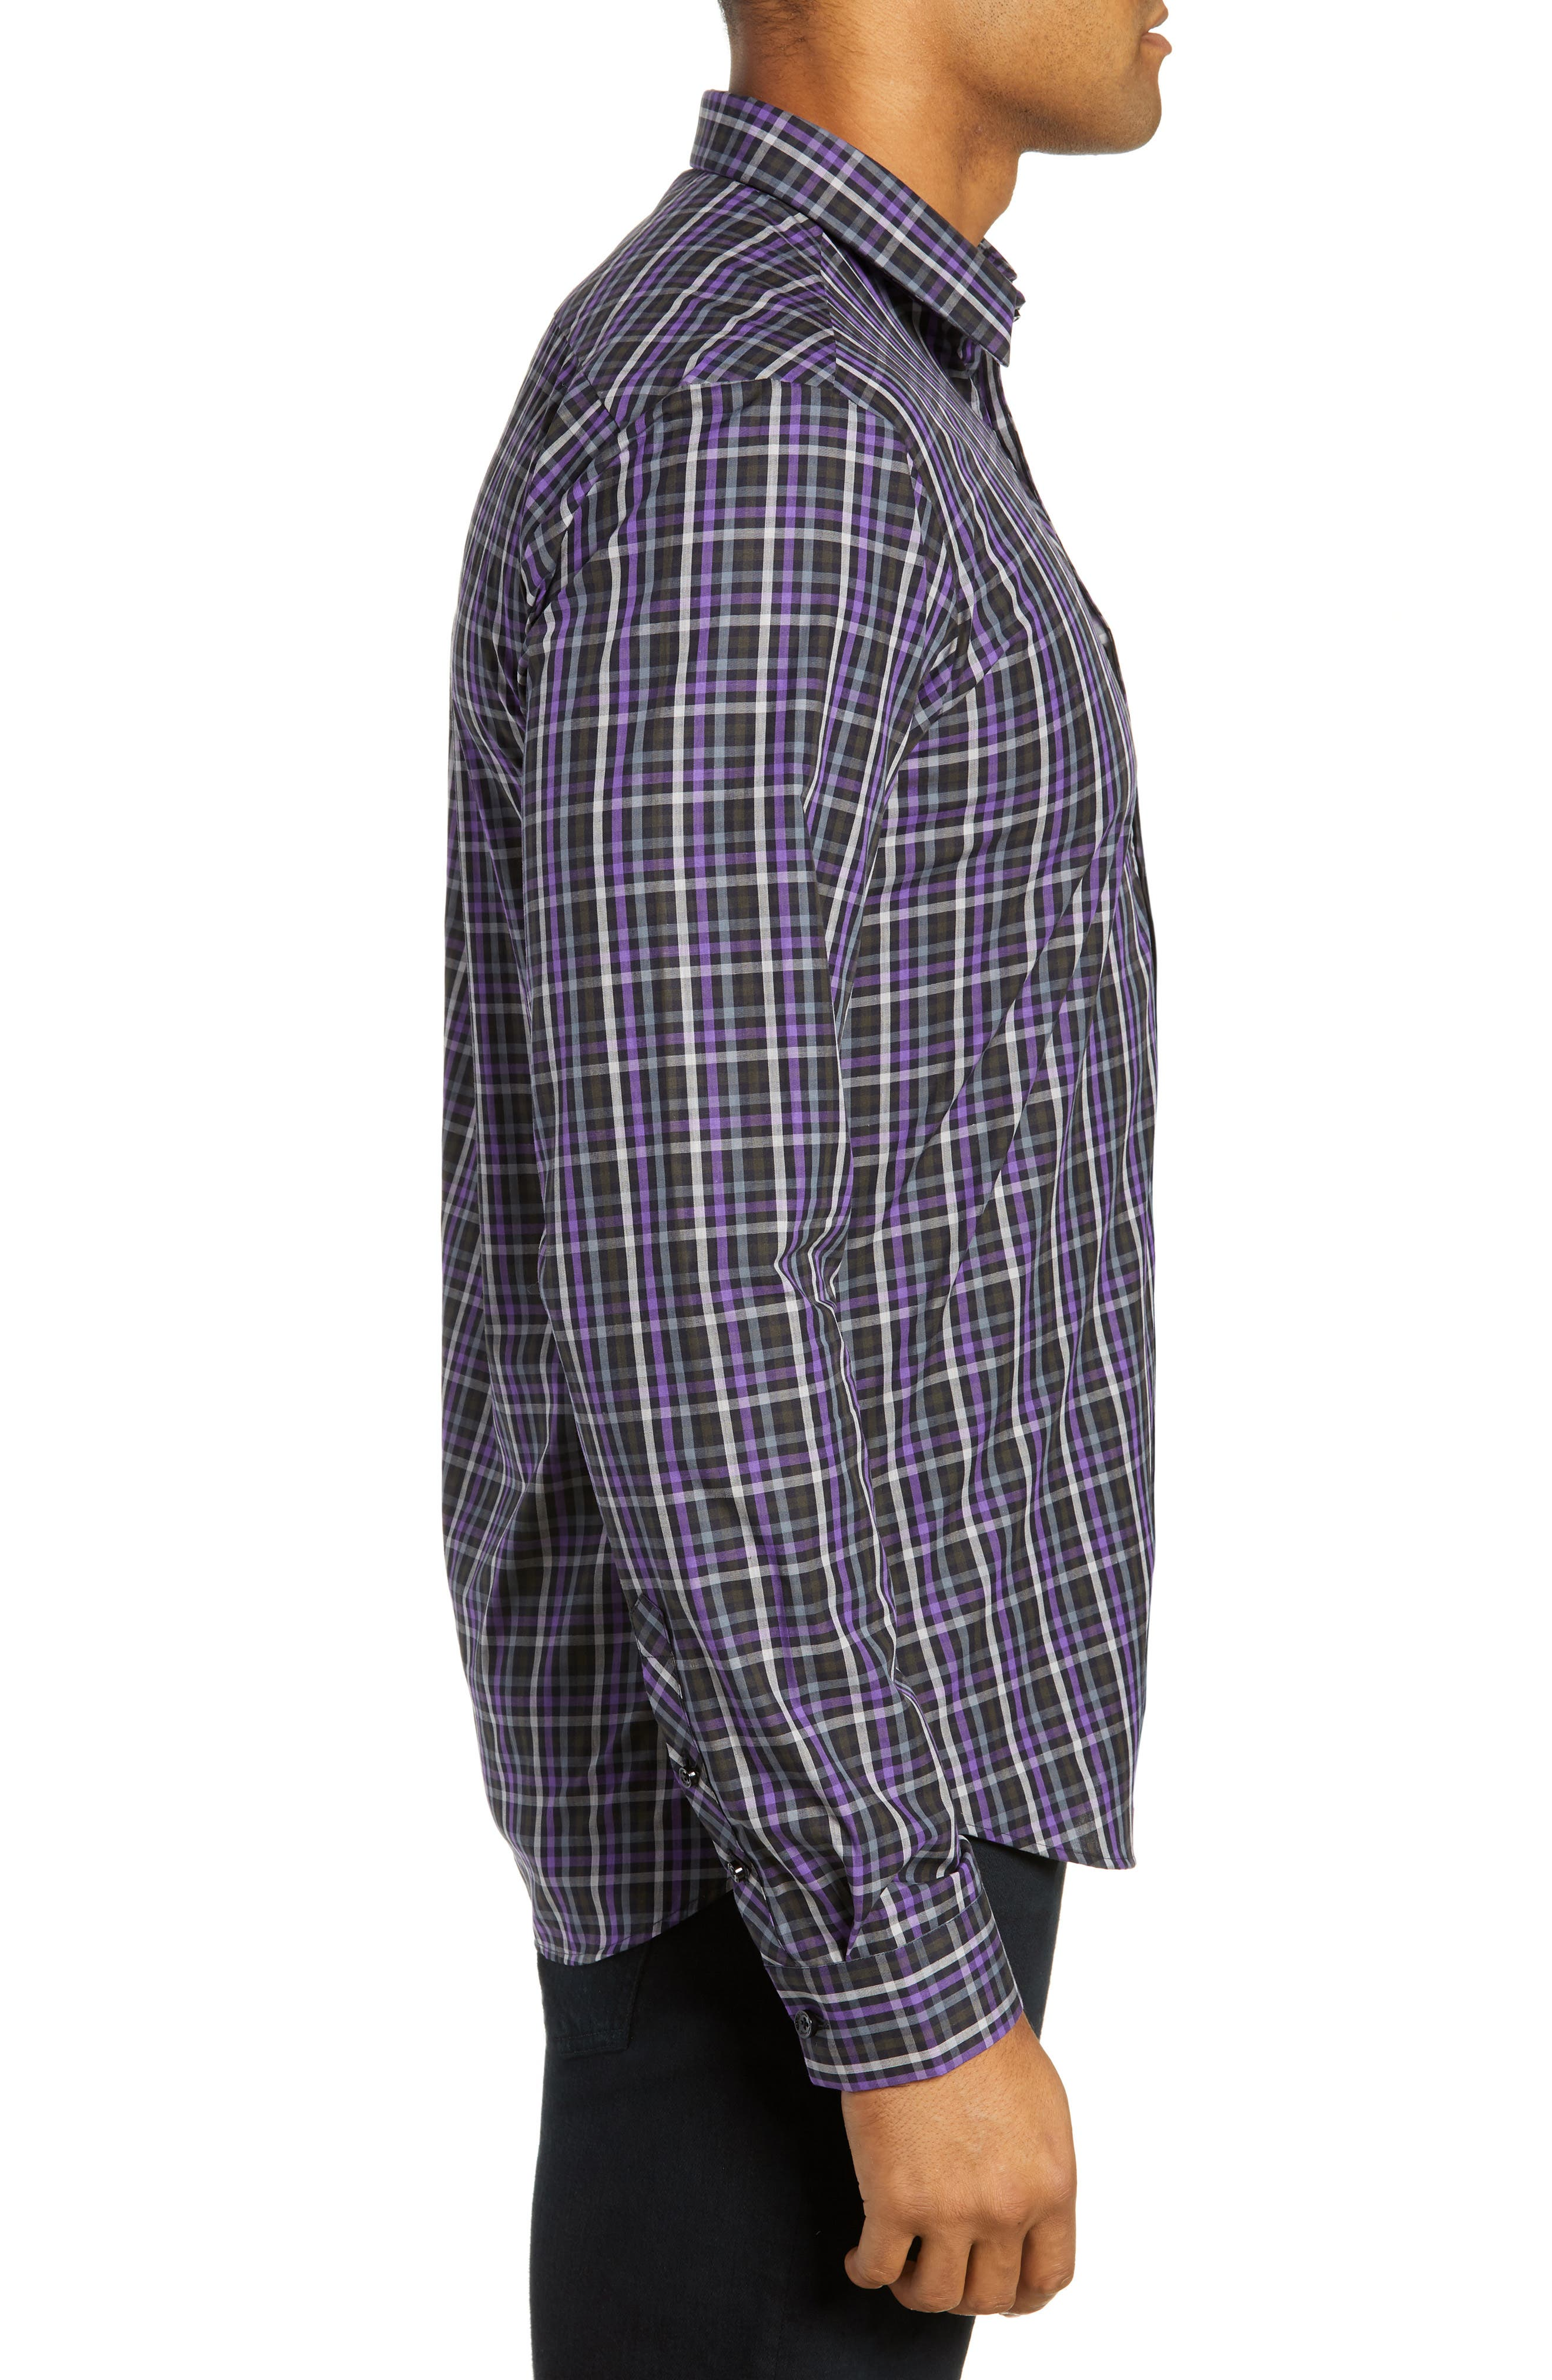 Trim Fit Sport Shirt,                             Alternate thumbnail 4, color,                             PURPLE - BLACK MULTI CHECK